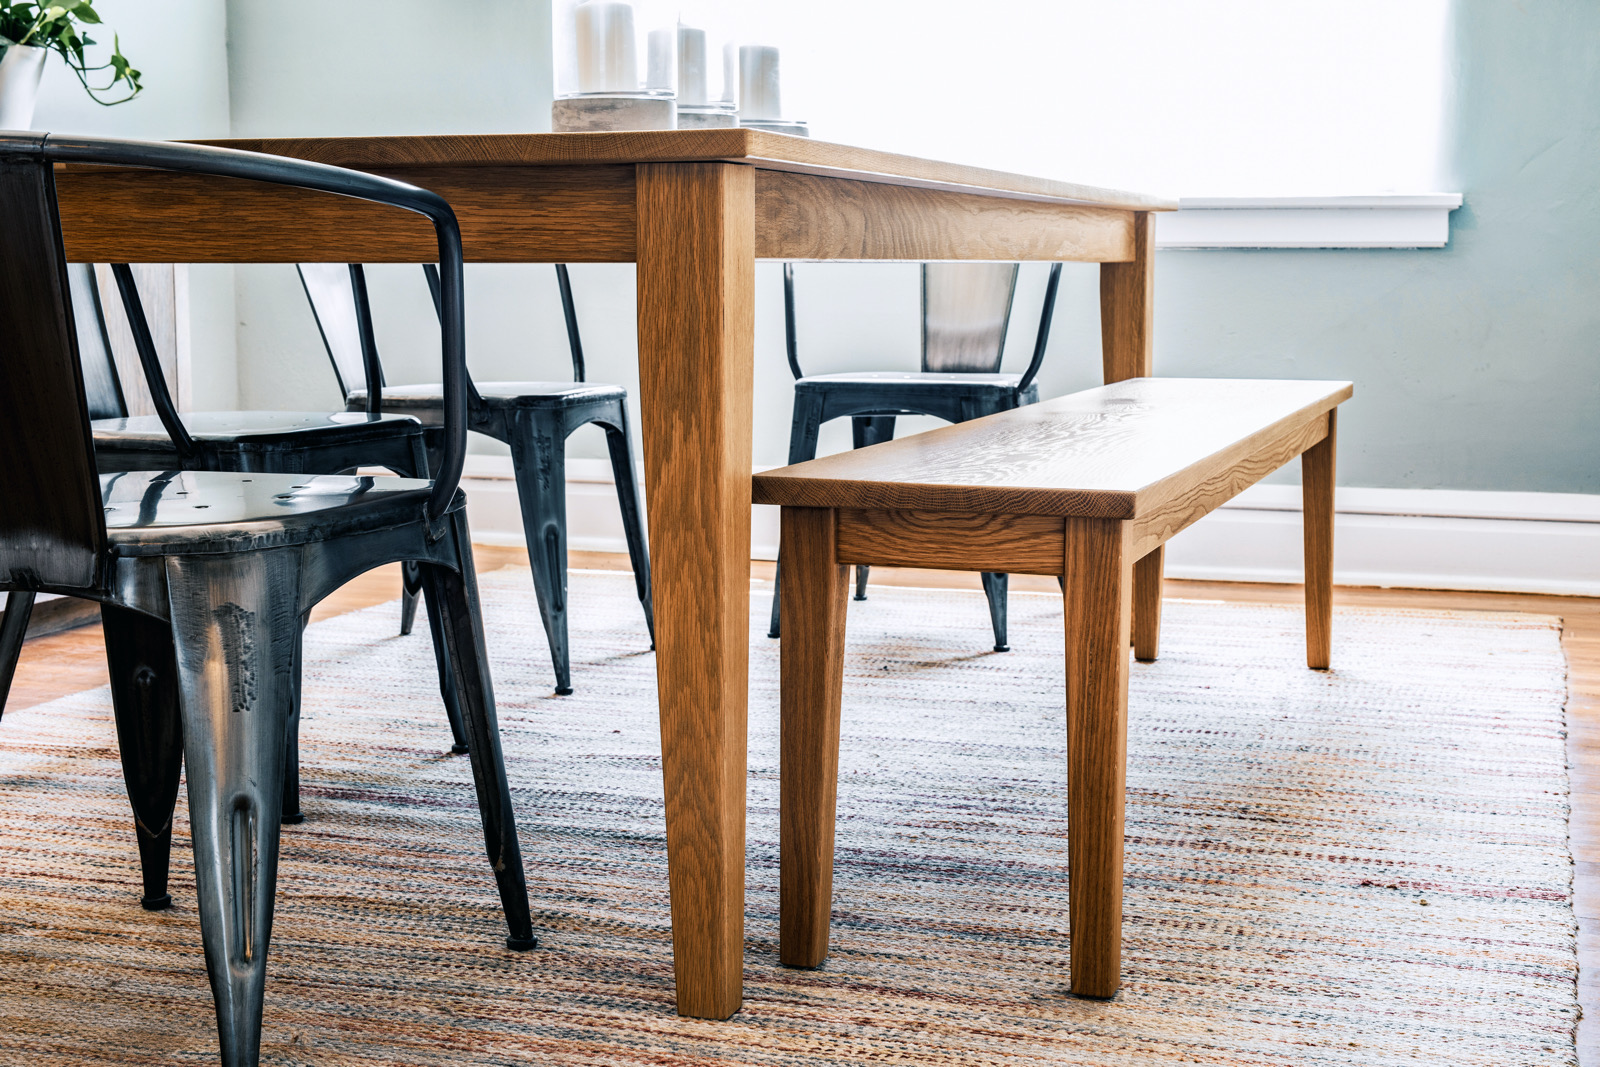 Eliminate Germs and Safeguard Your Home with a Brand New Dining Room Set